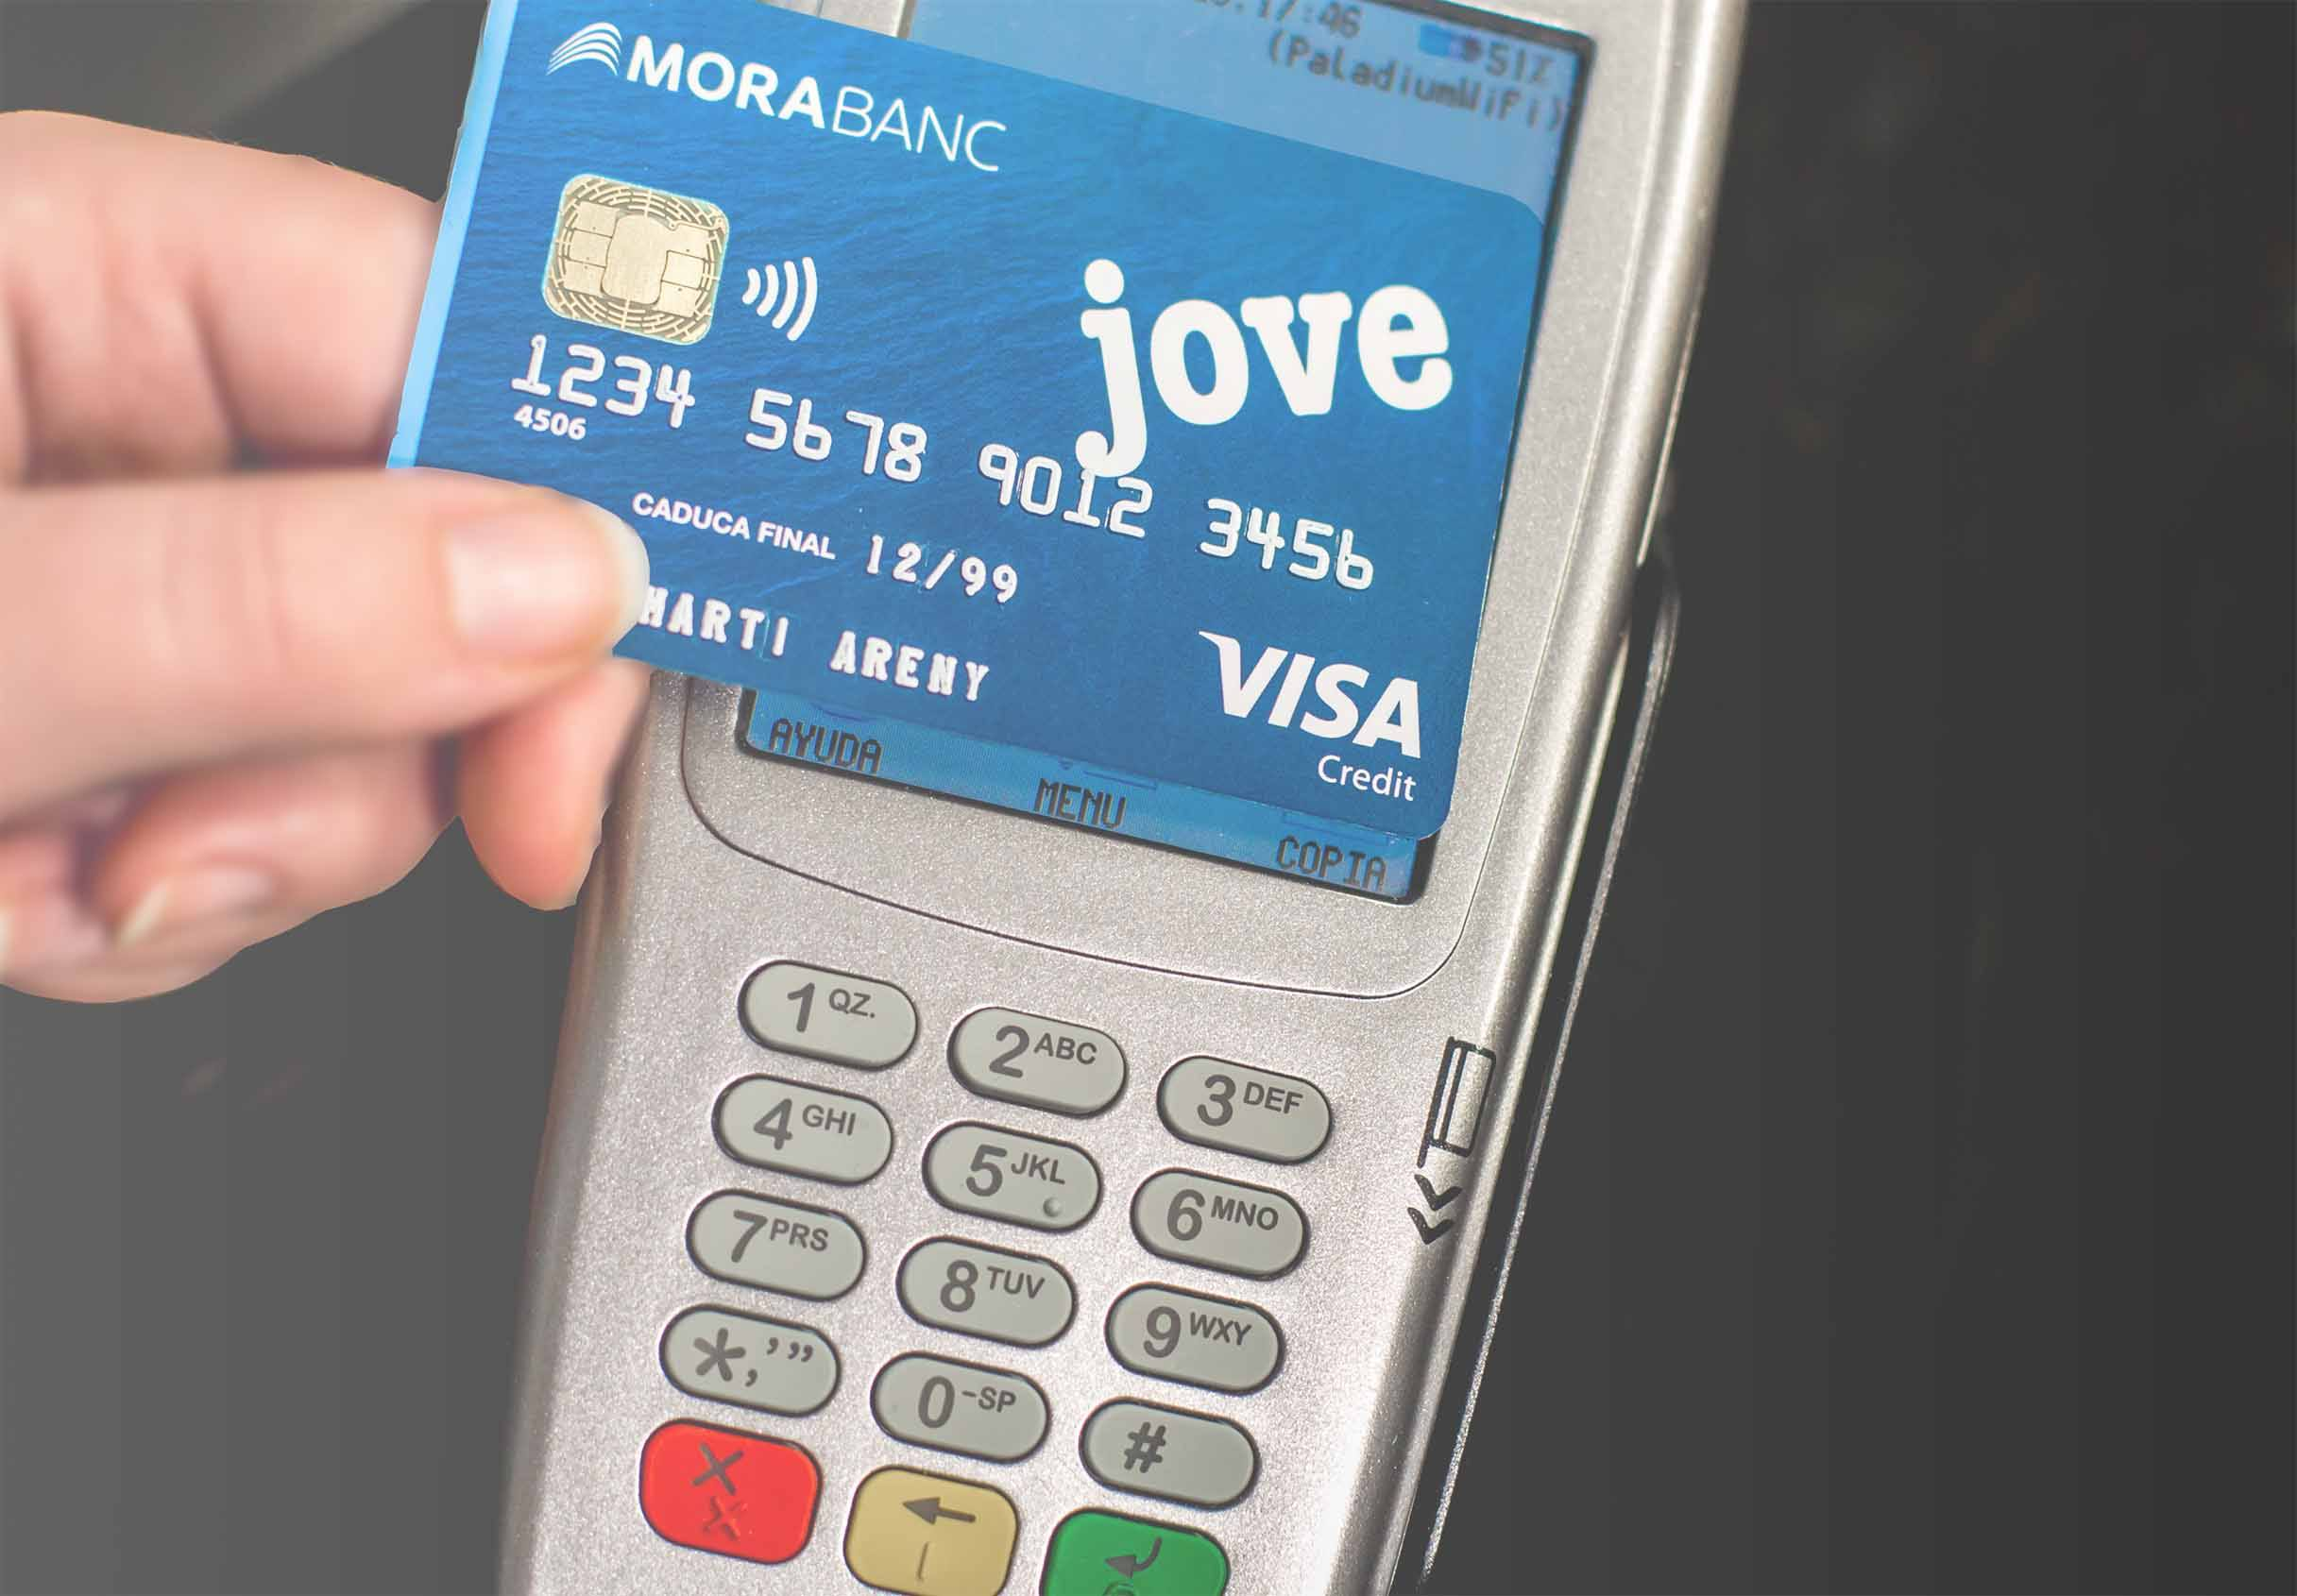 MoraBanc's new contactless cards